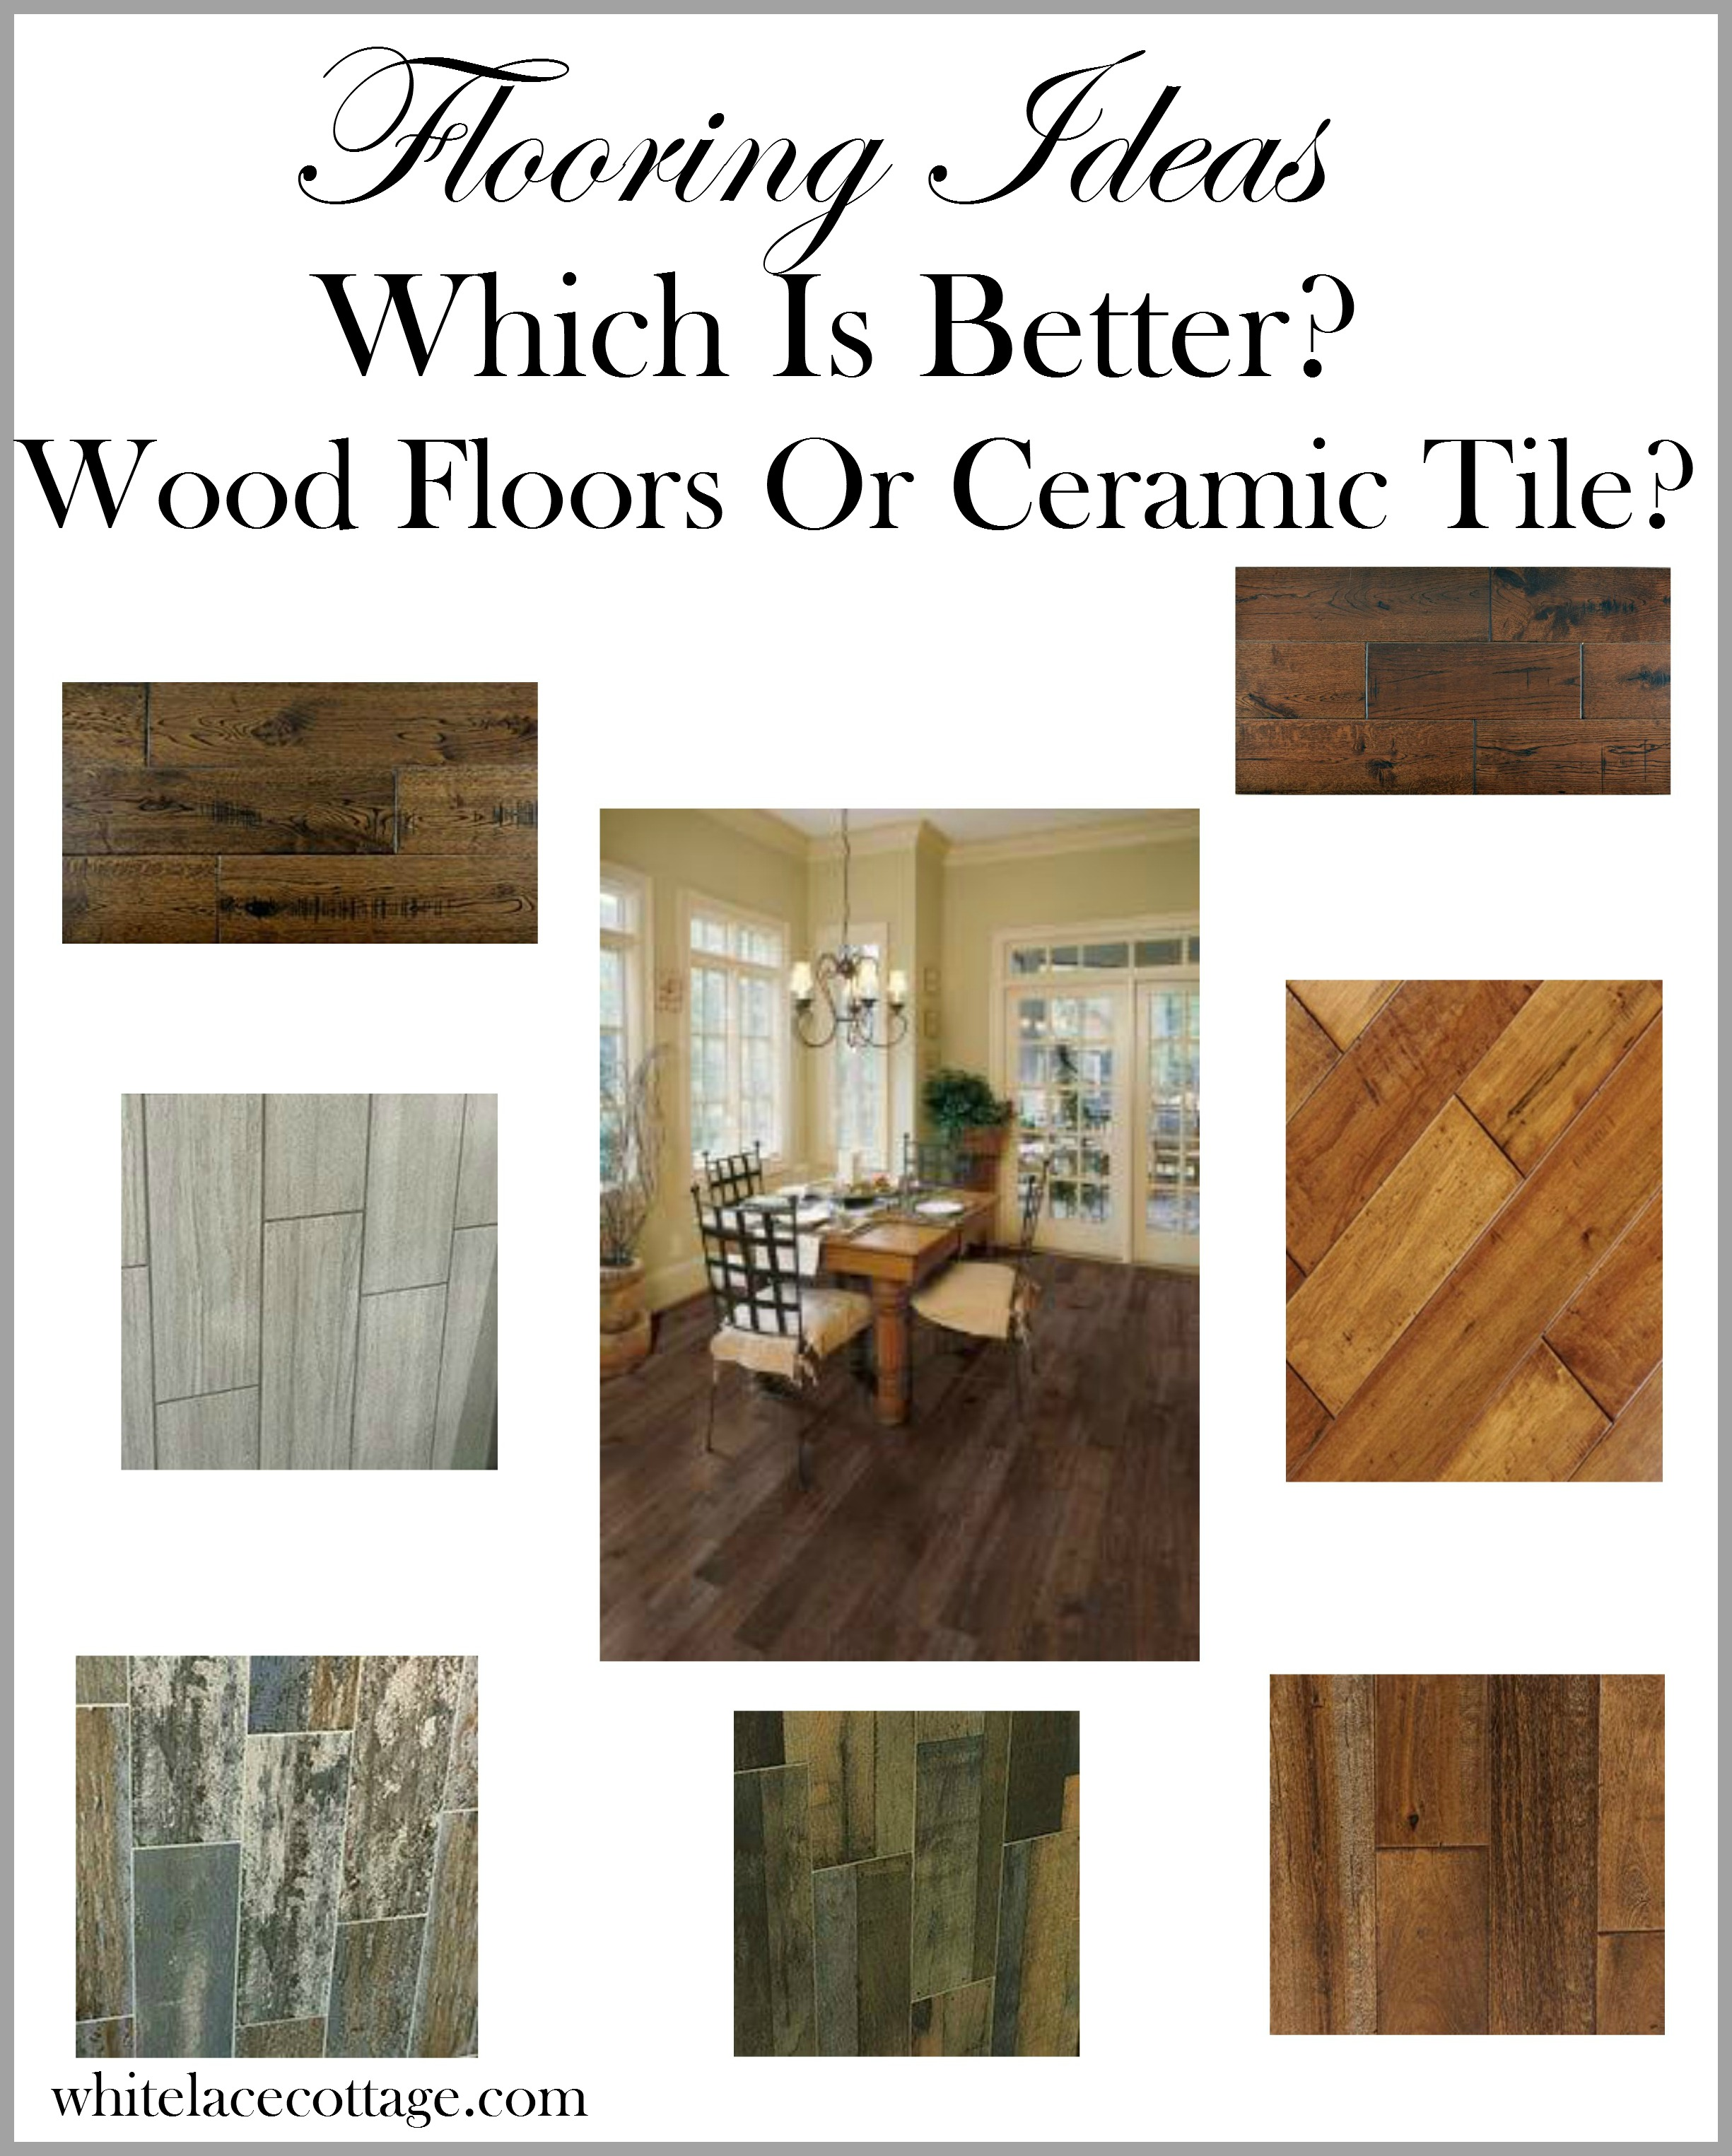 Flooring ideas wood ceramic vs carpeting white lace cottage for Cottage flooring ideas